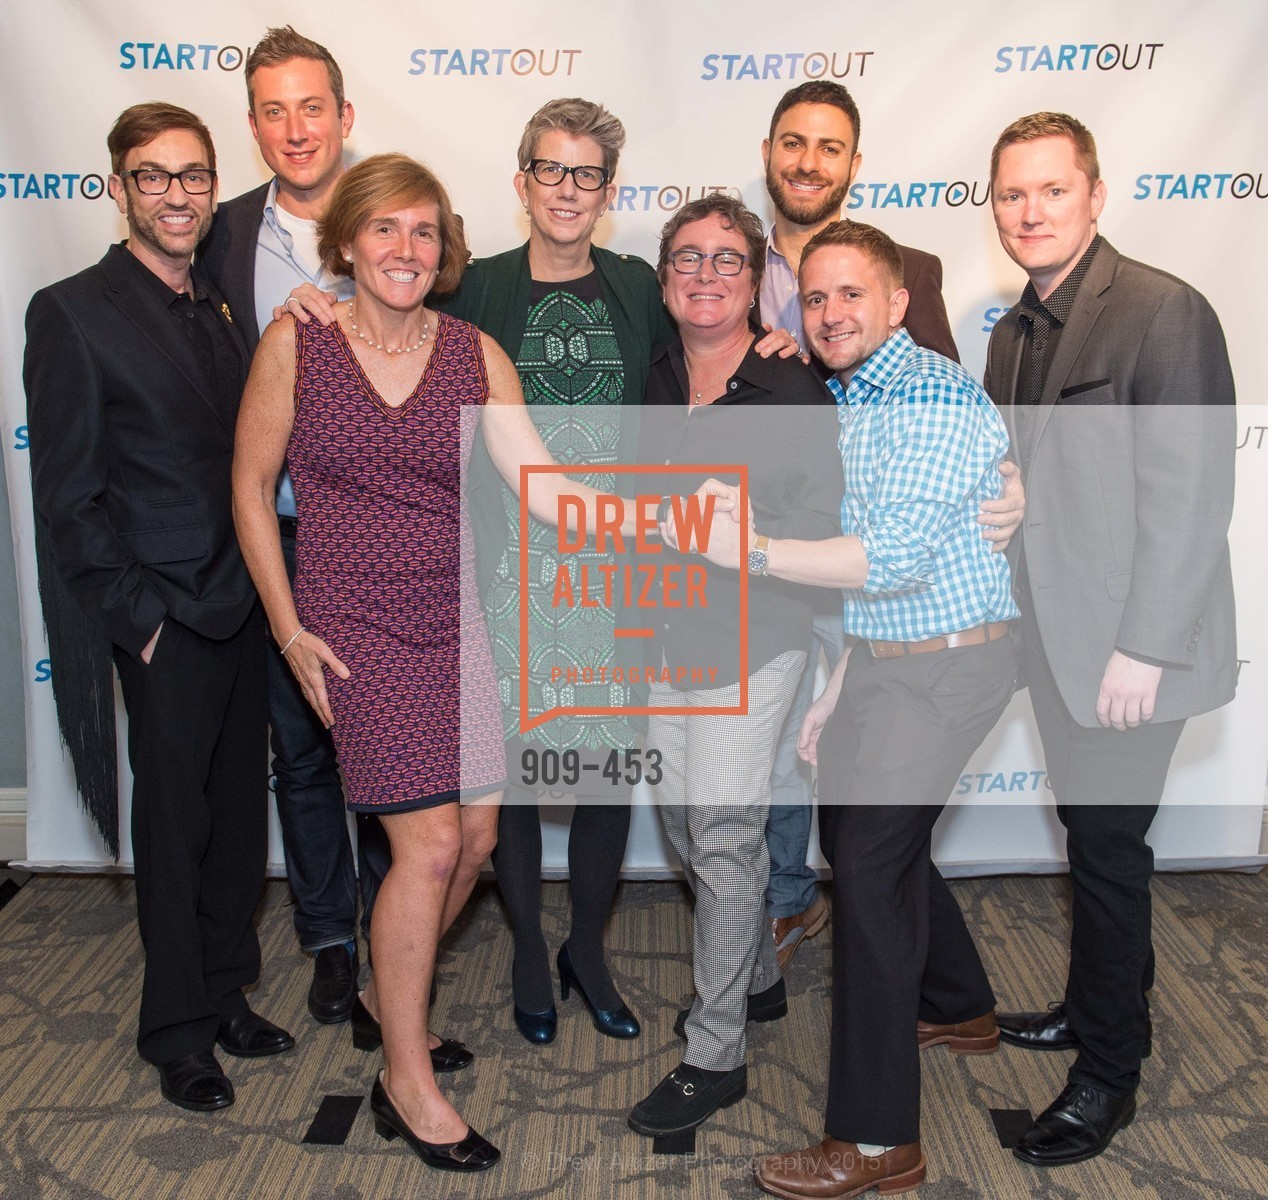 Chris Sinton, Michael Berl, Carla McKay, Mary Shea, Marie Trexler, Joe Dipasquale, James Bain, Patrick Grosso, The 2015 StartOut Awards, Kabuki Hotel. 2525 Van Ness St, November 5th, 2015,Drew Altizer, Drew Altizer Photography, full-service agency, private events, San Francisco photographer, photographer california